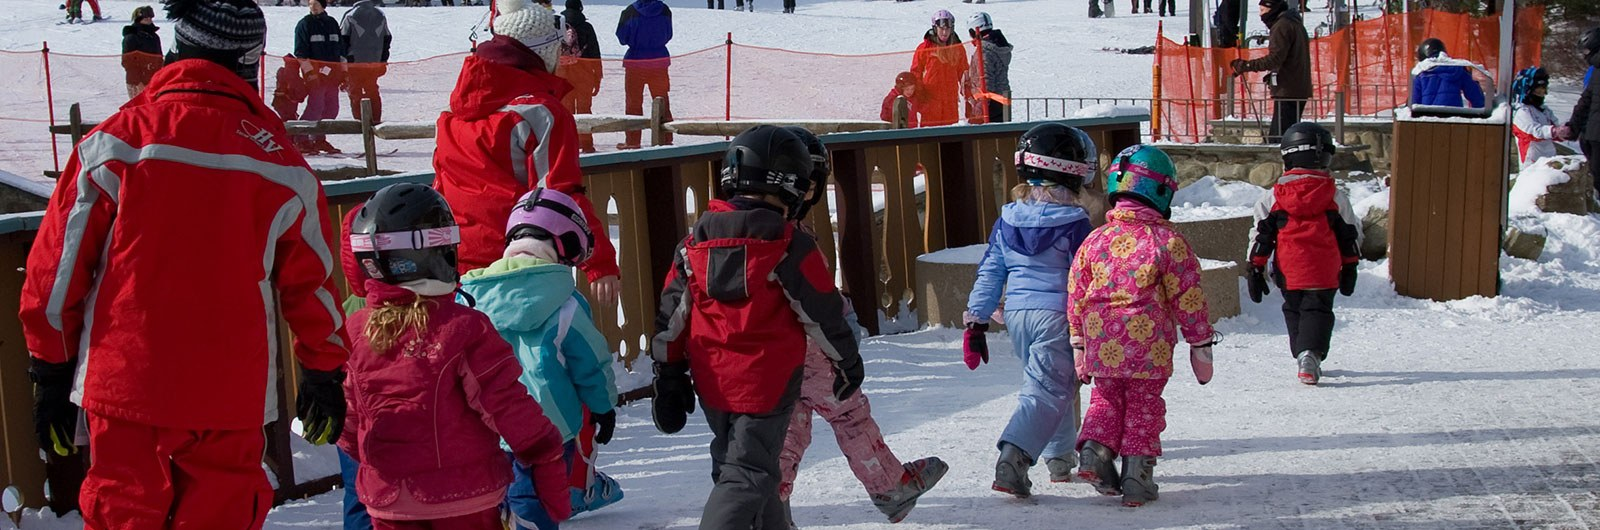 kids heading to their ski lesson